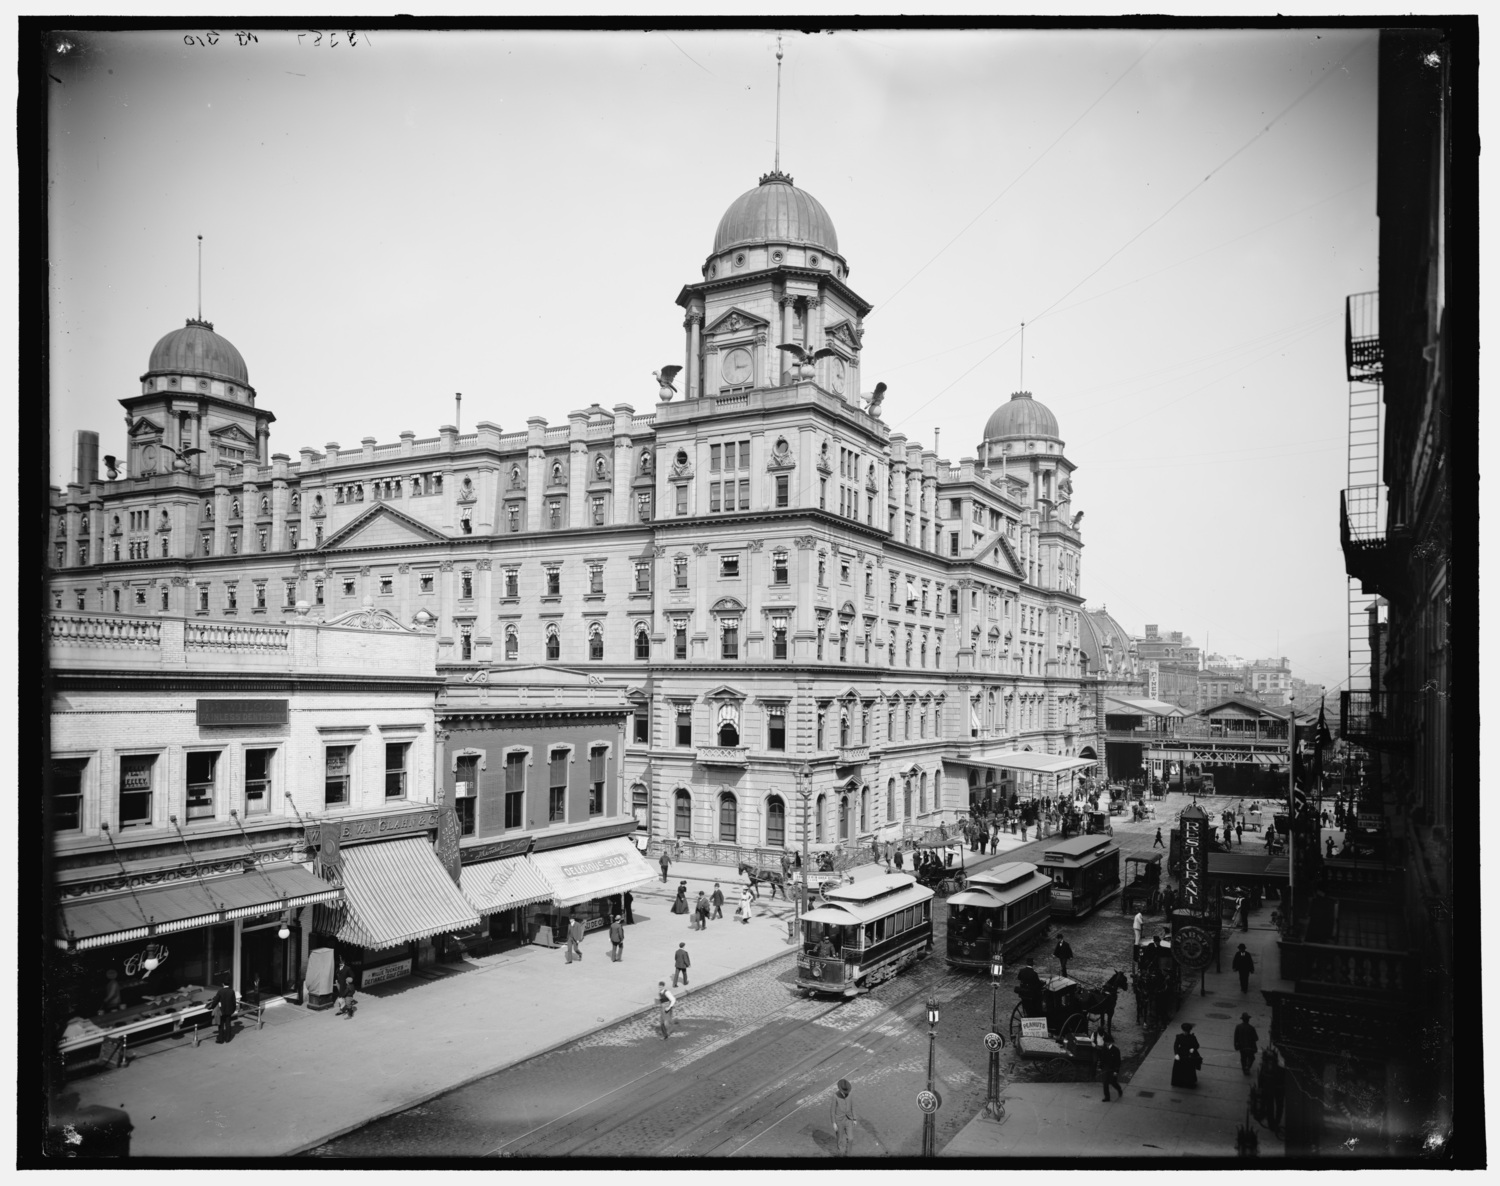 Grand Central Station [i.e. Depot], New York, N.Y., ca 1900